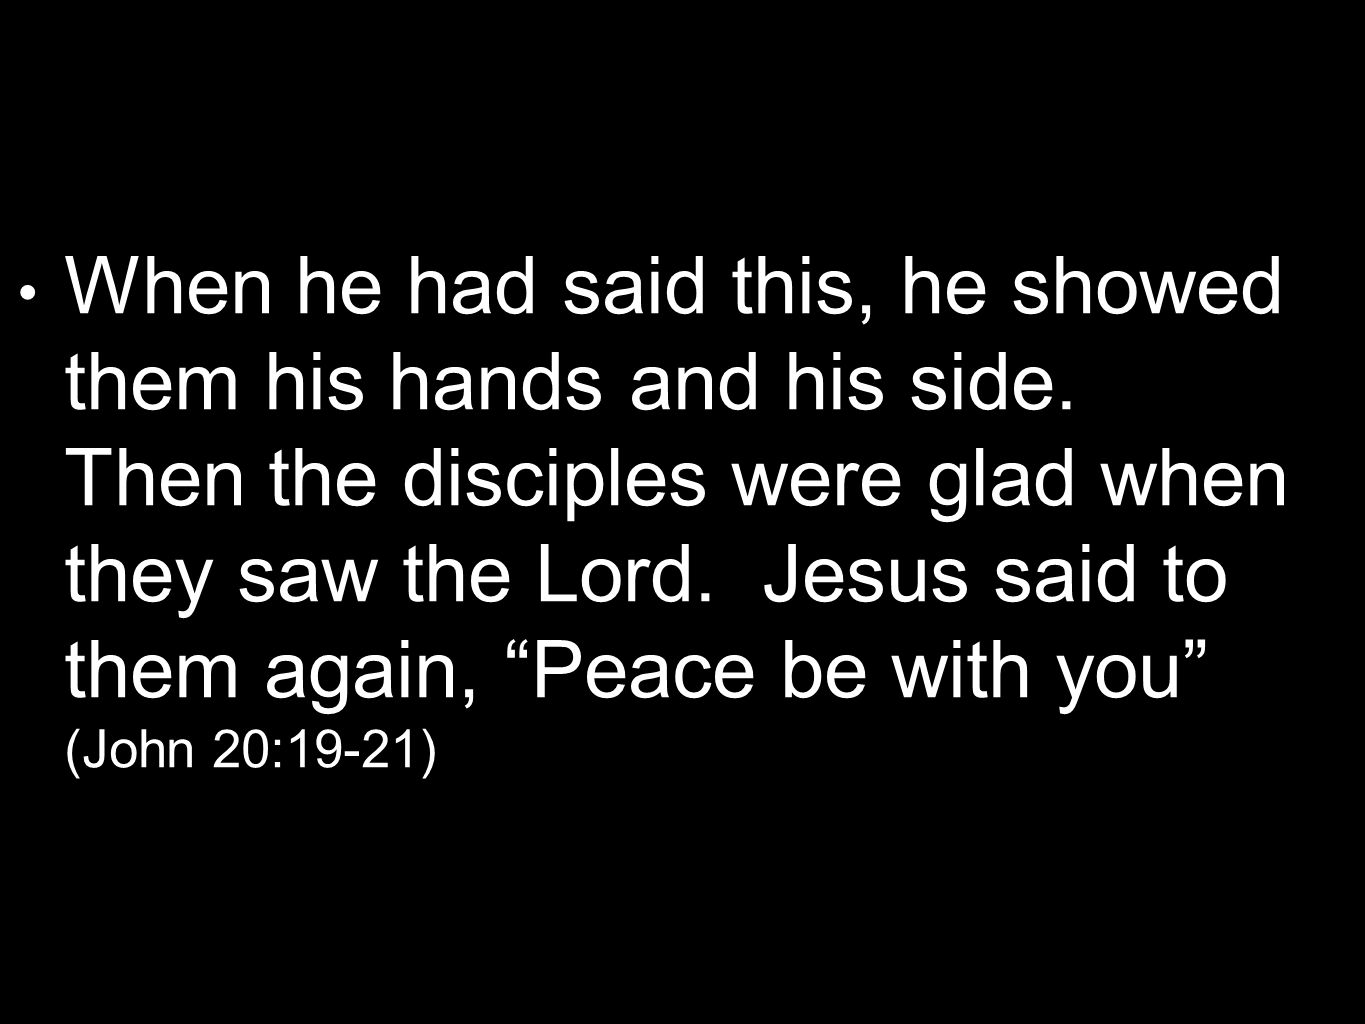 When he had said this, he showed them his hands and his side. Then the disciples were glad when they saw the Lord. Jesus said to them again, Peace be